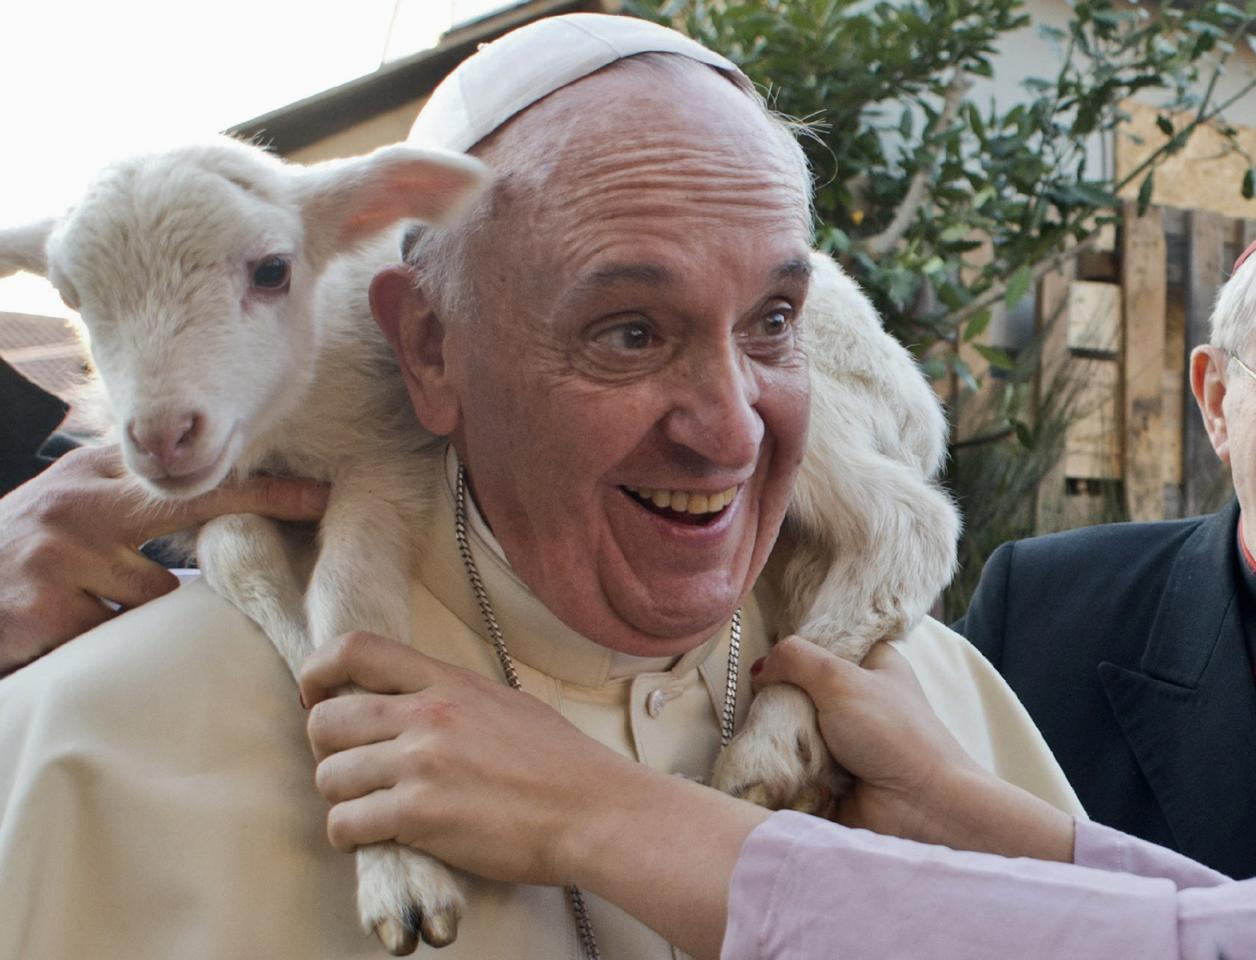 A woman dressed as a character from the nativity scene puts a lamb around the neck of Pope Francis as he arrives to visit the Church of St Alfonso Maria dei Liguori in the outskirts of Rome